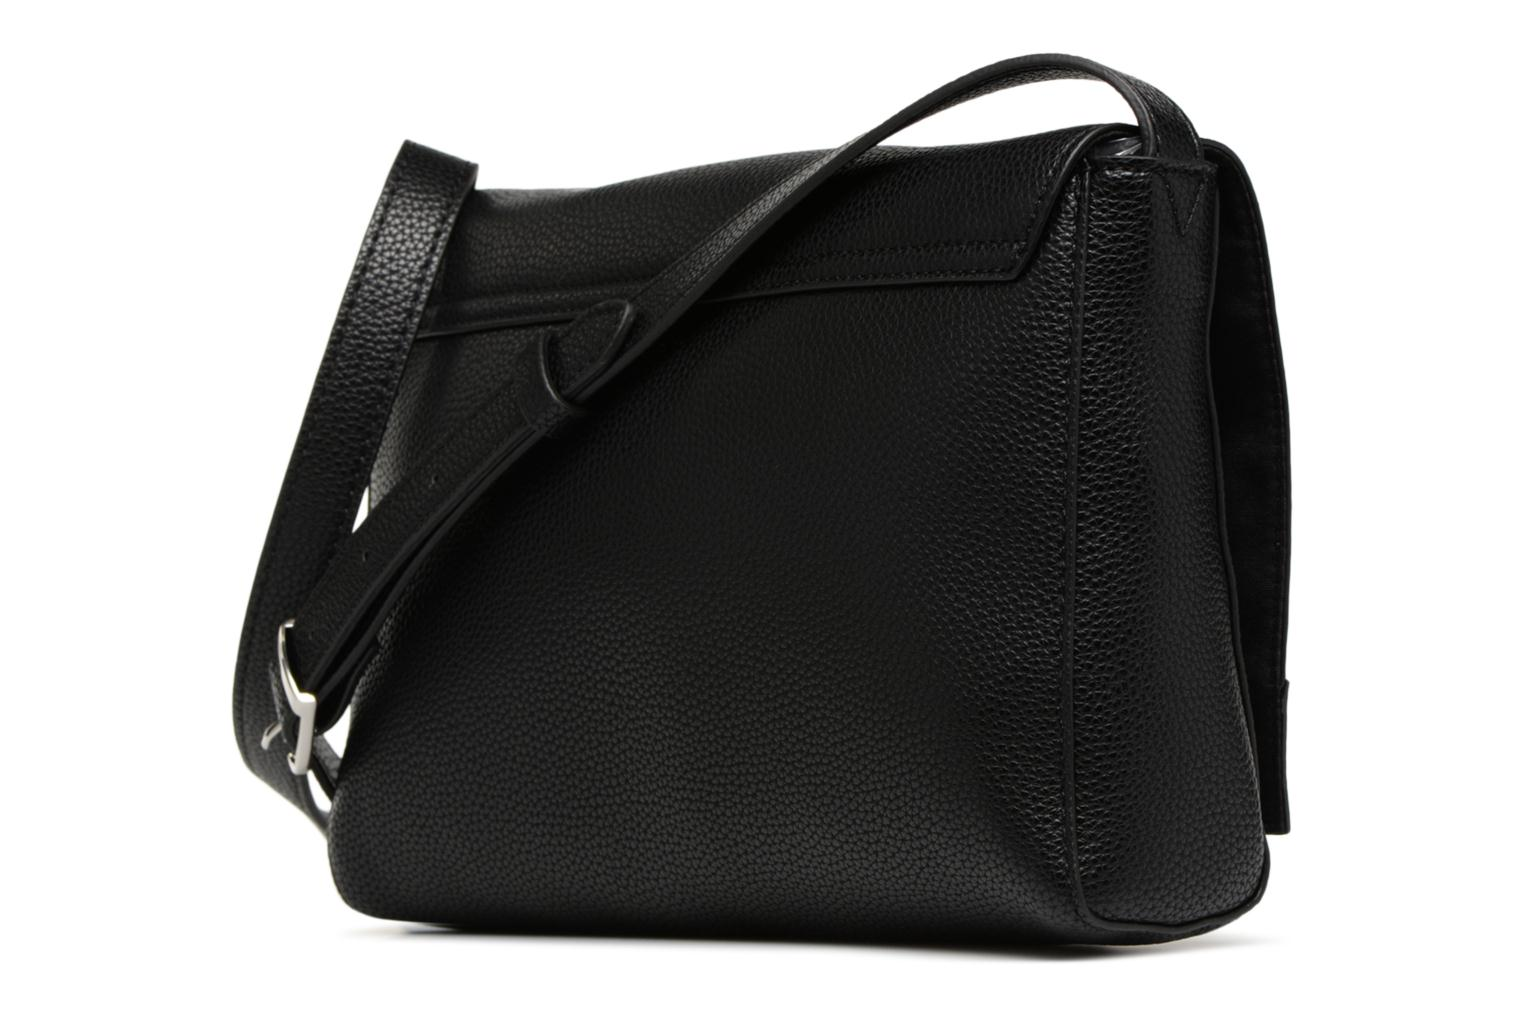 Bag Esprit Shoulder Fran black 001 0vX7vx